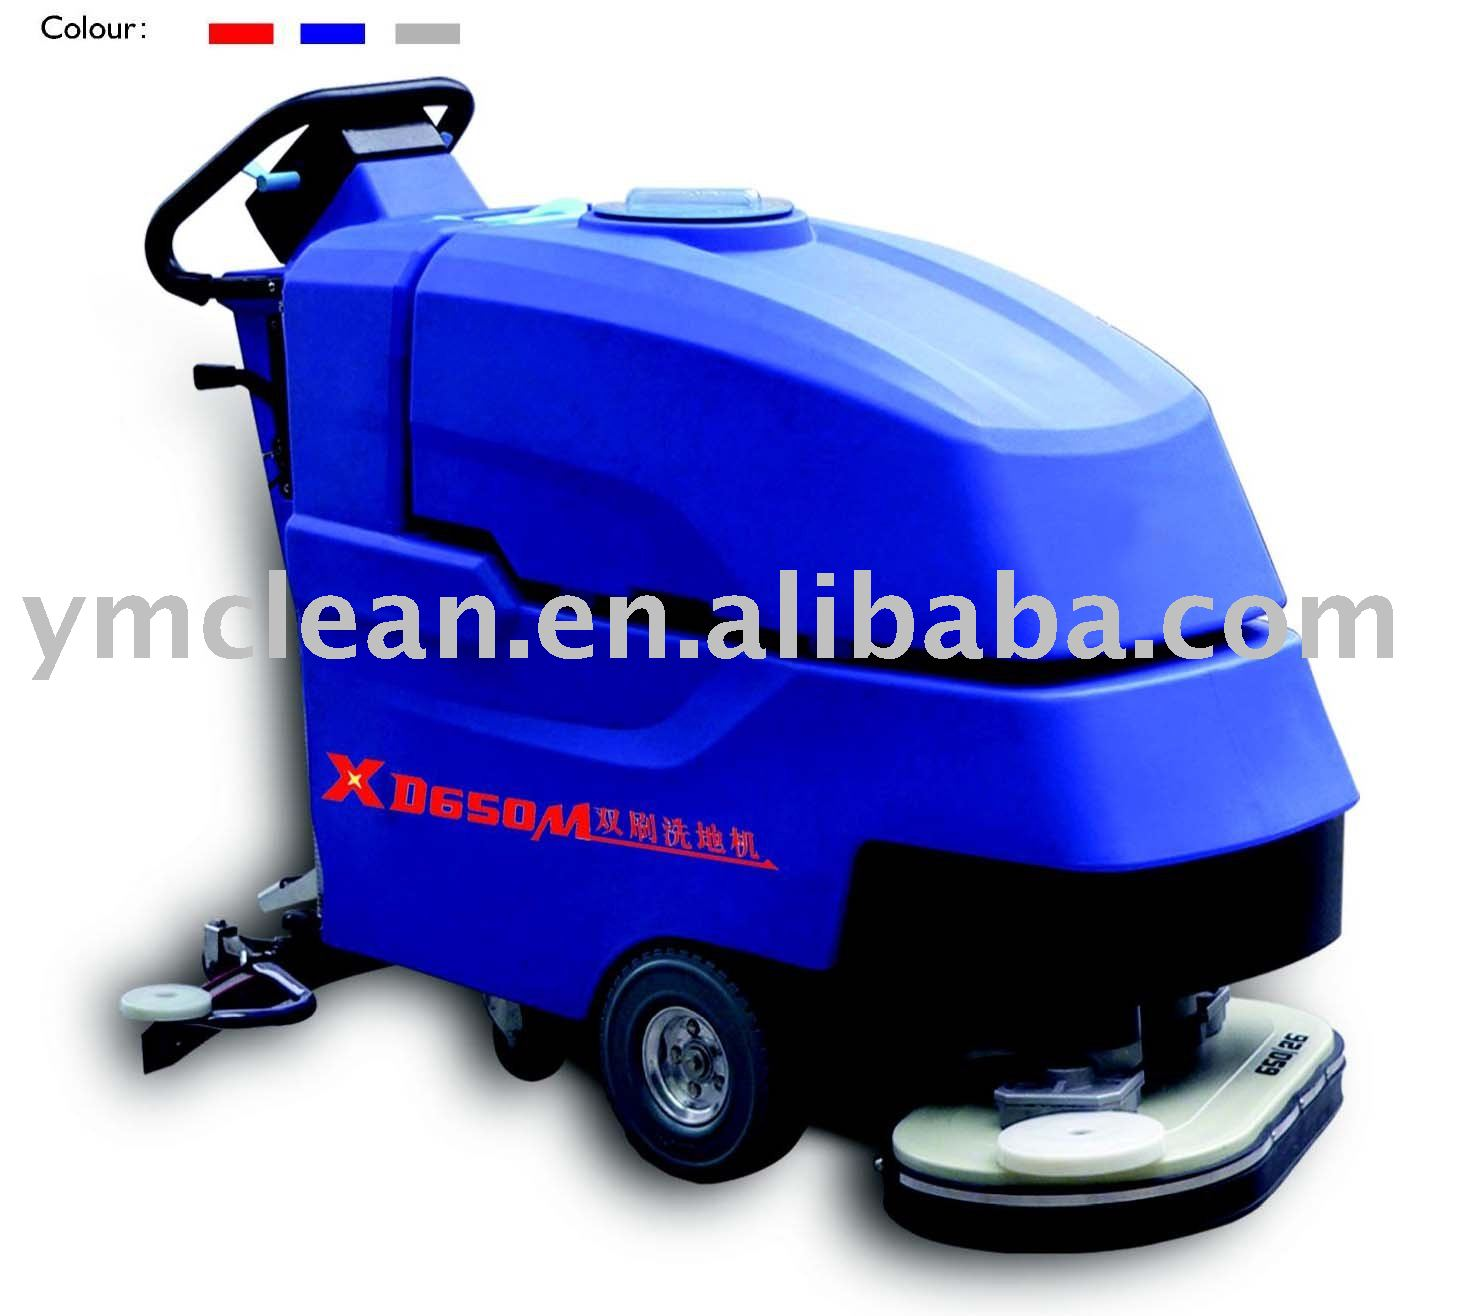 Grout cleaning machines for sale super max electric for Industrial concrete floor cleaning machines